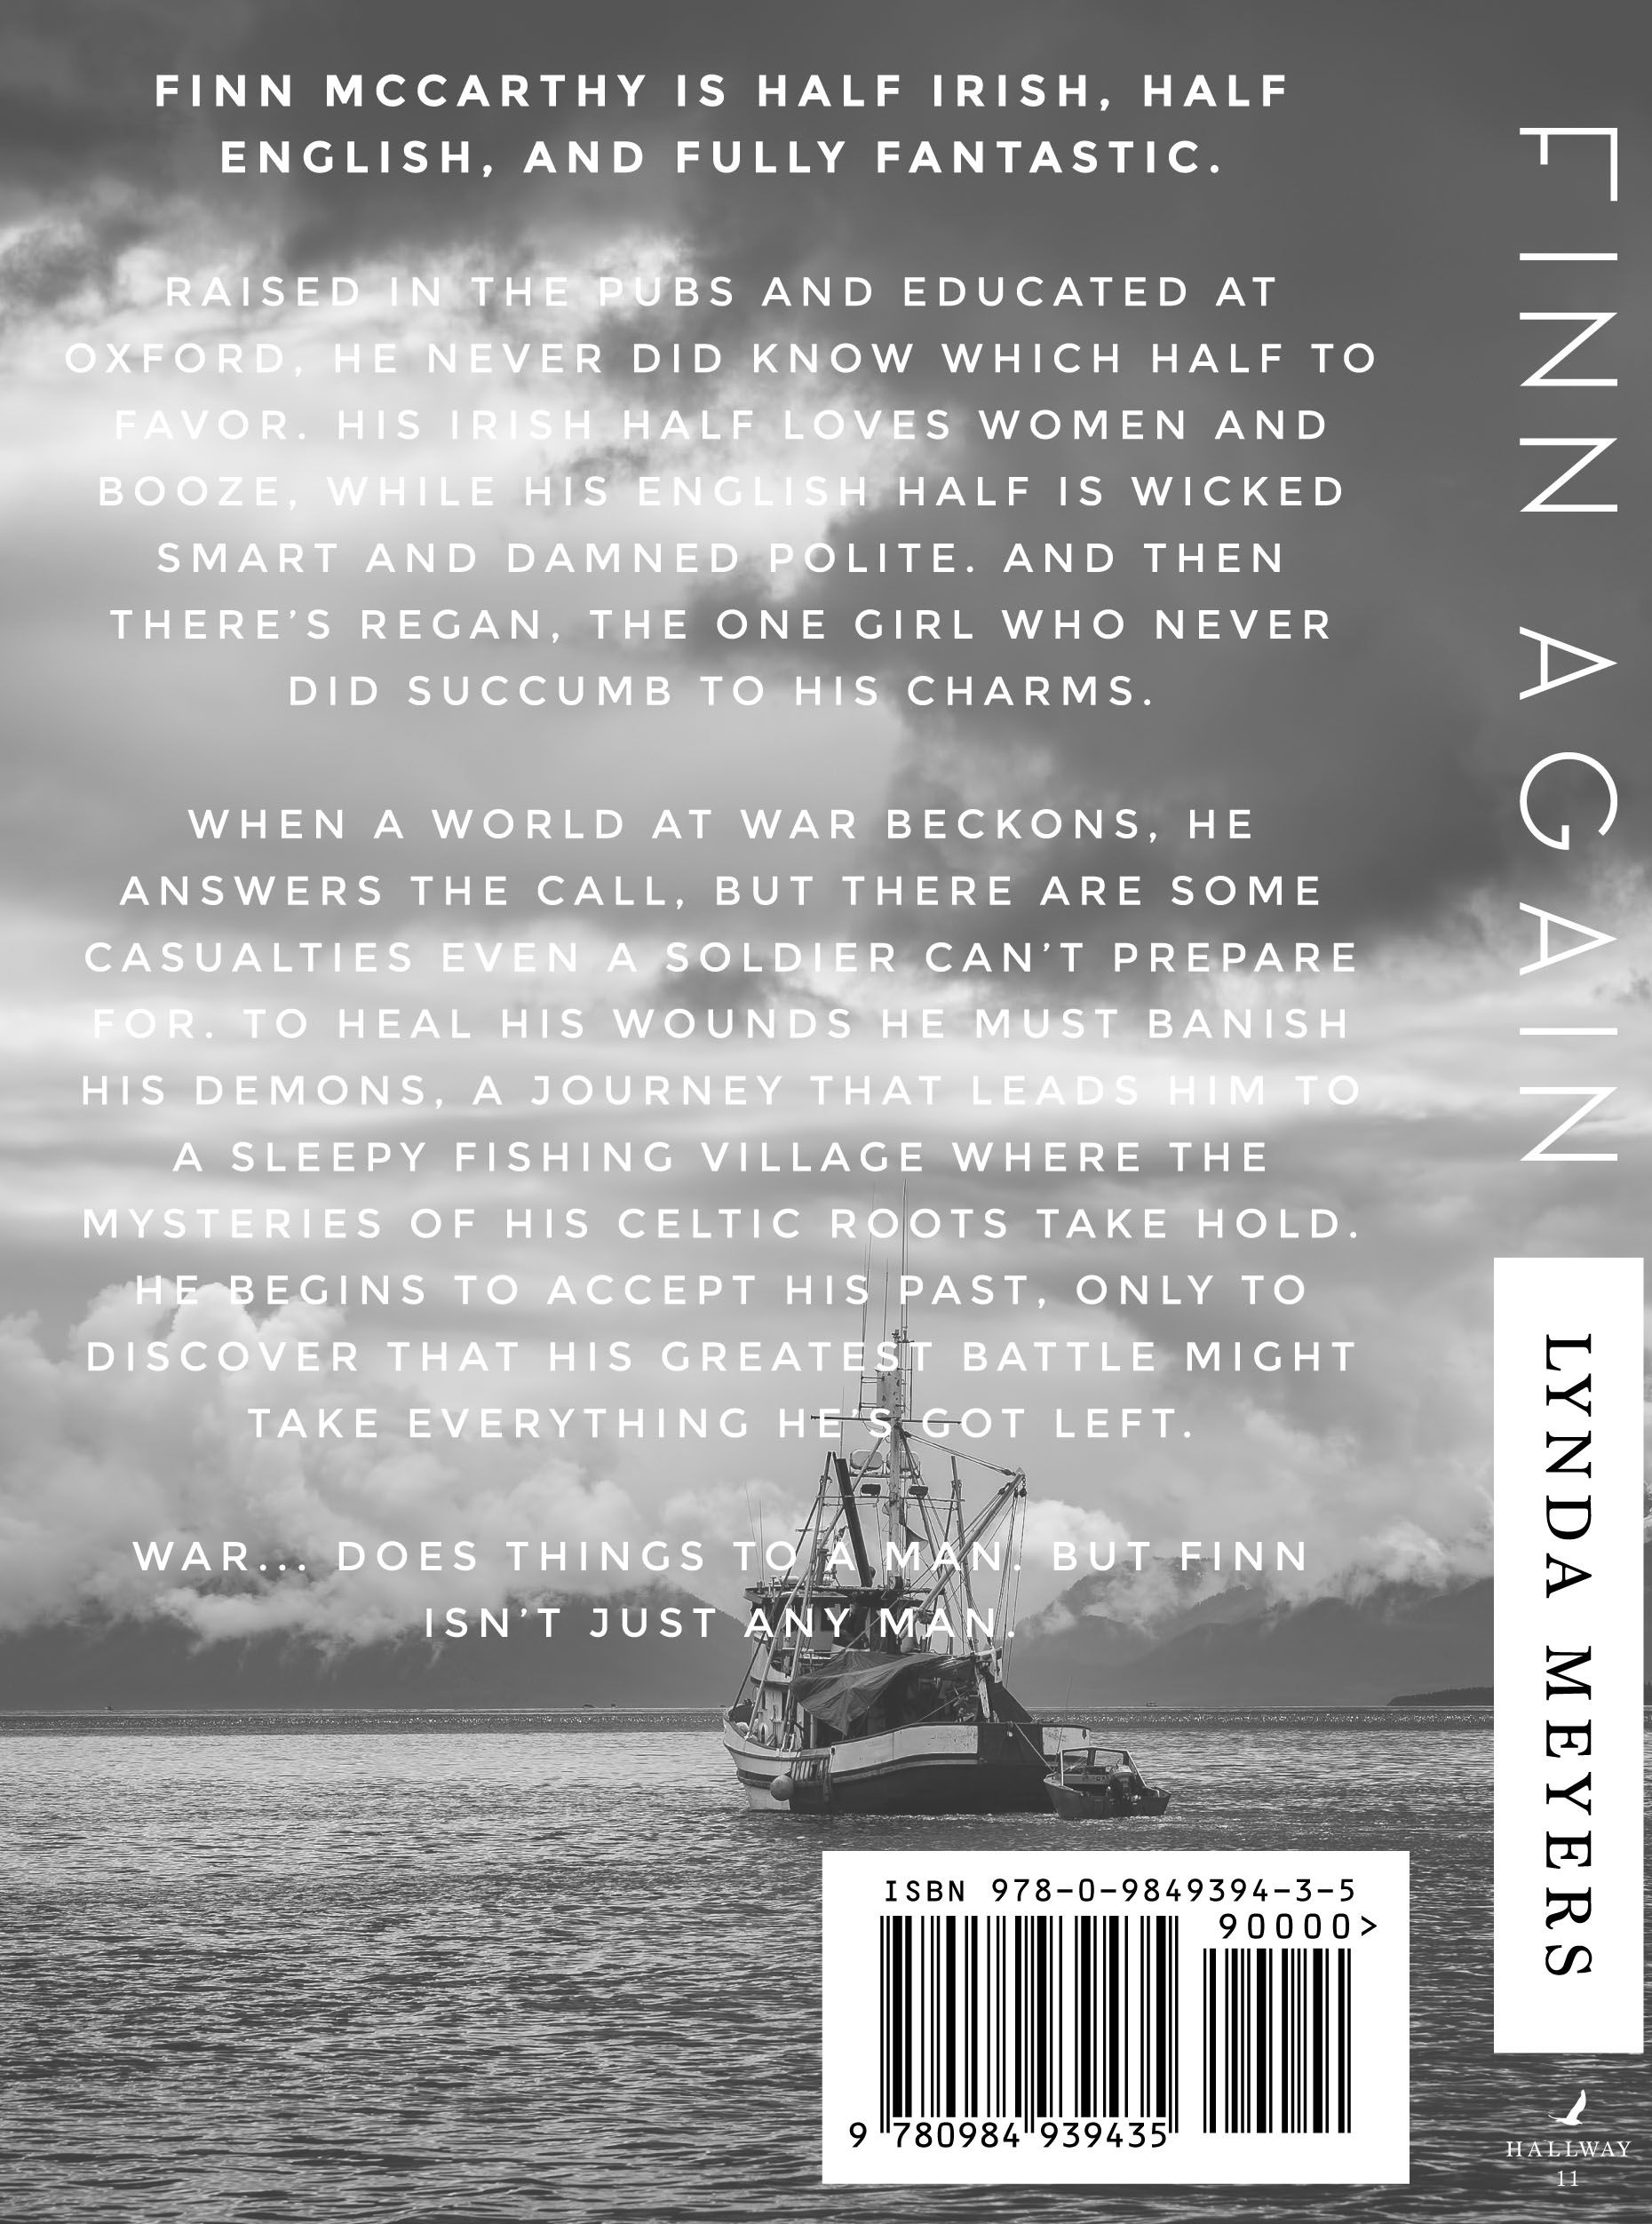 Finn Again is a refreshingly honest, deeply moving tale of one man's journey down a path he never intended, searching for a life he never knew he wanted. Available in paperback or on Kindle.